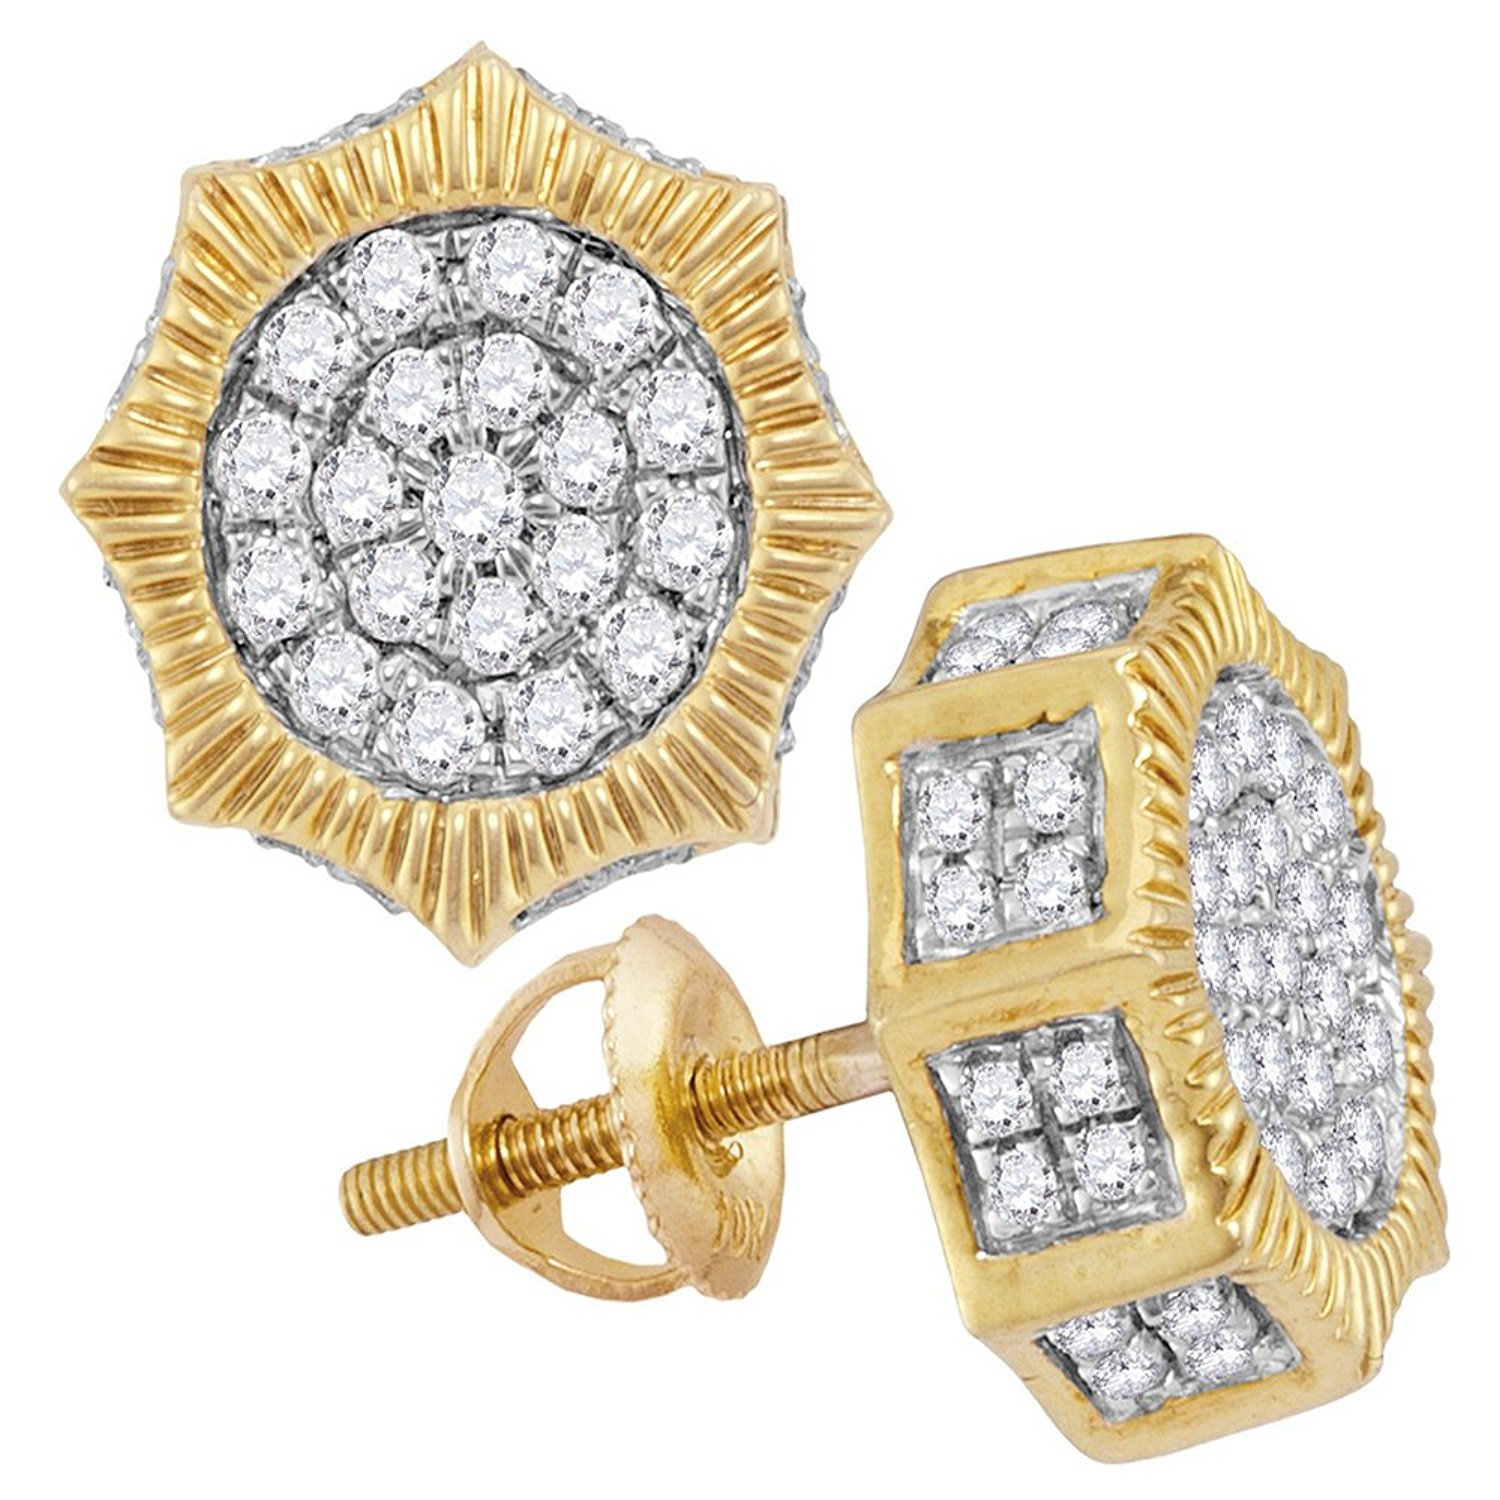 10KT Yellow Gold Mens Round Diamond Kite Square Cluster Stud Earrings 0.09 Cttw